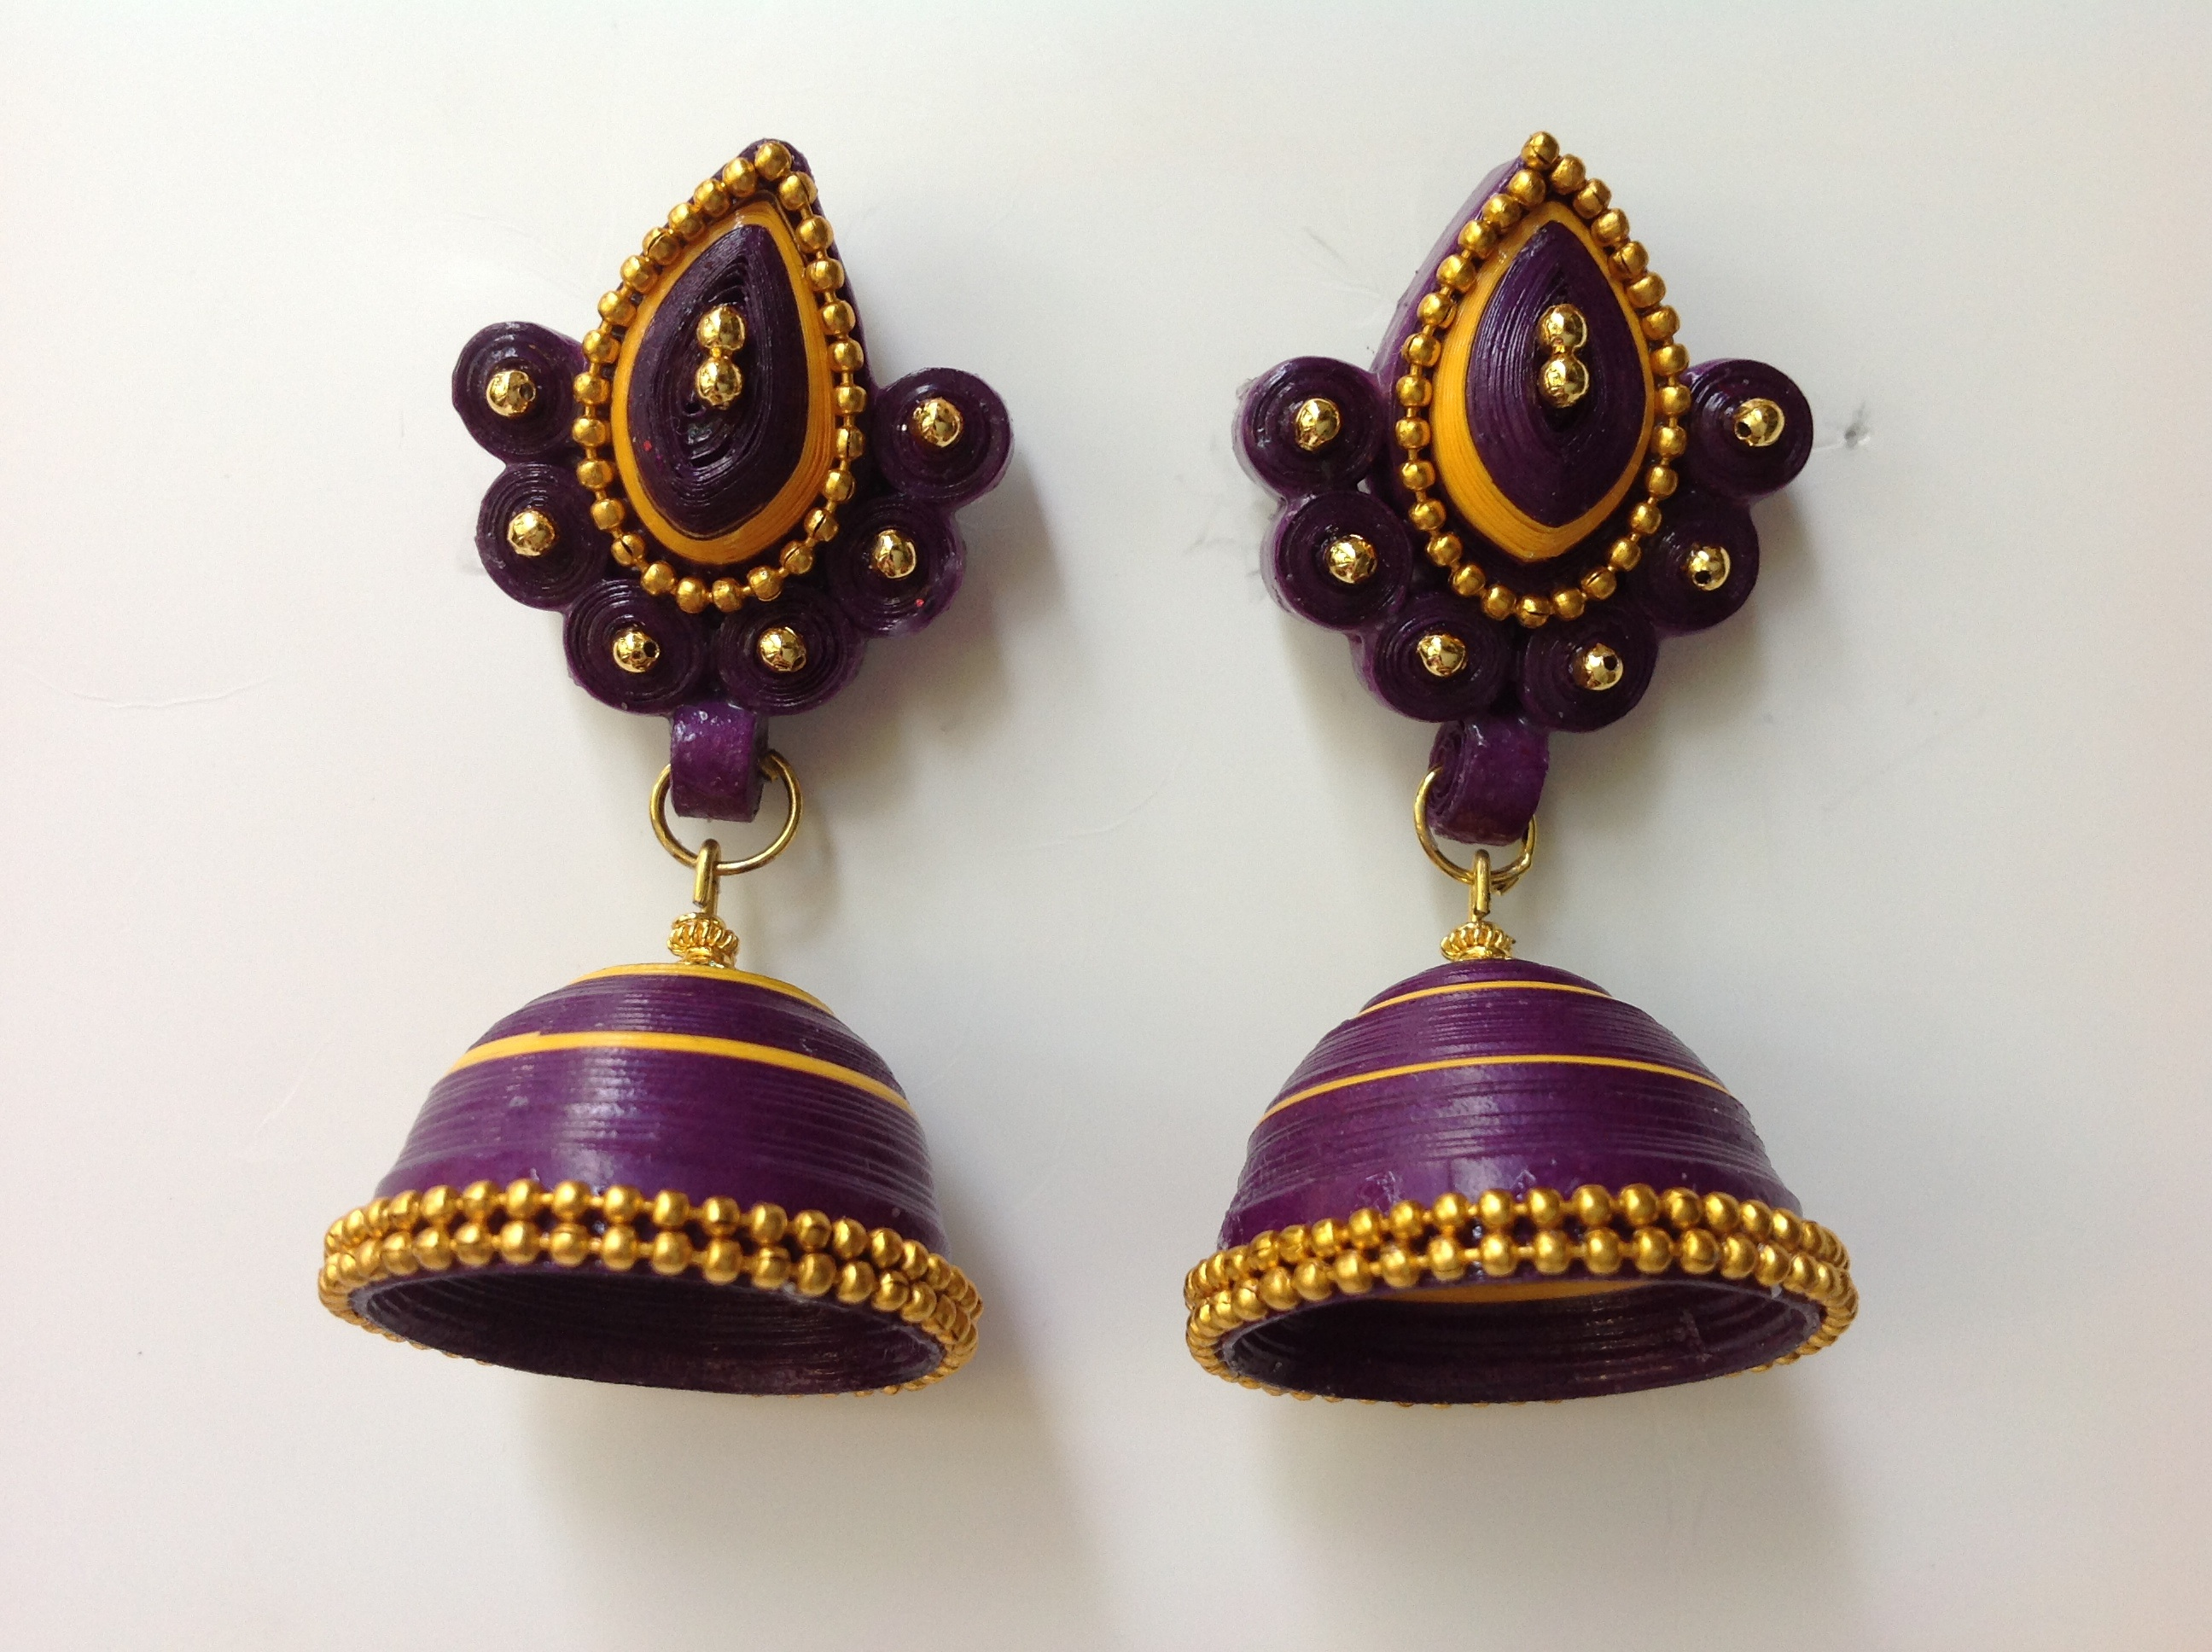 Quilling Earrings Basic Designs : Latest Beautiful Easy Paper Quilling Jewellery Designs Images Photos Collection